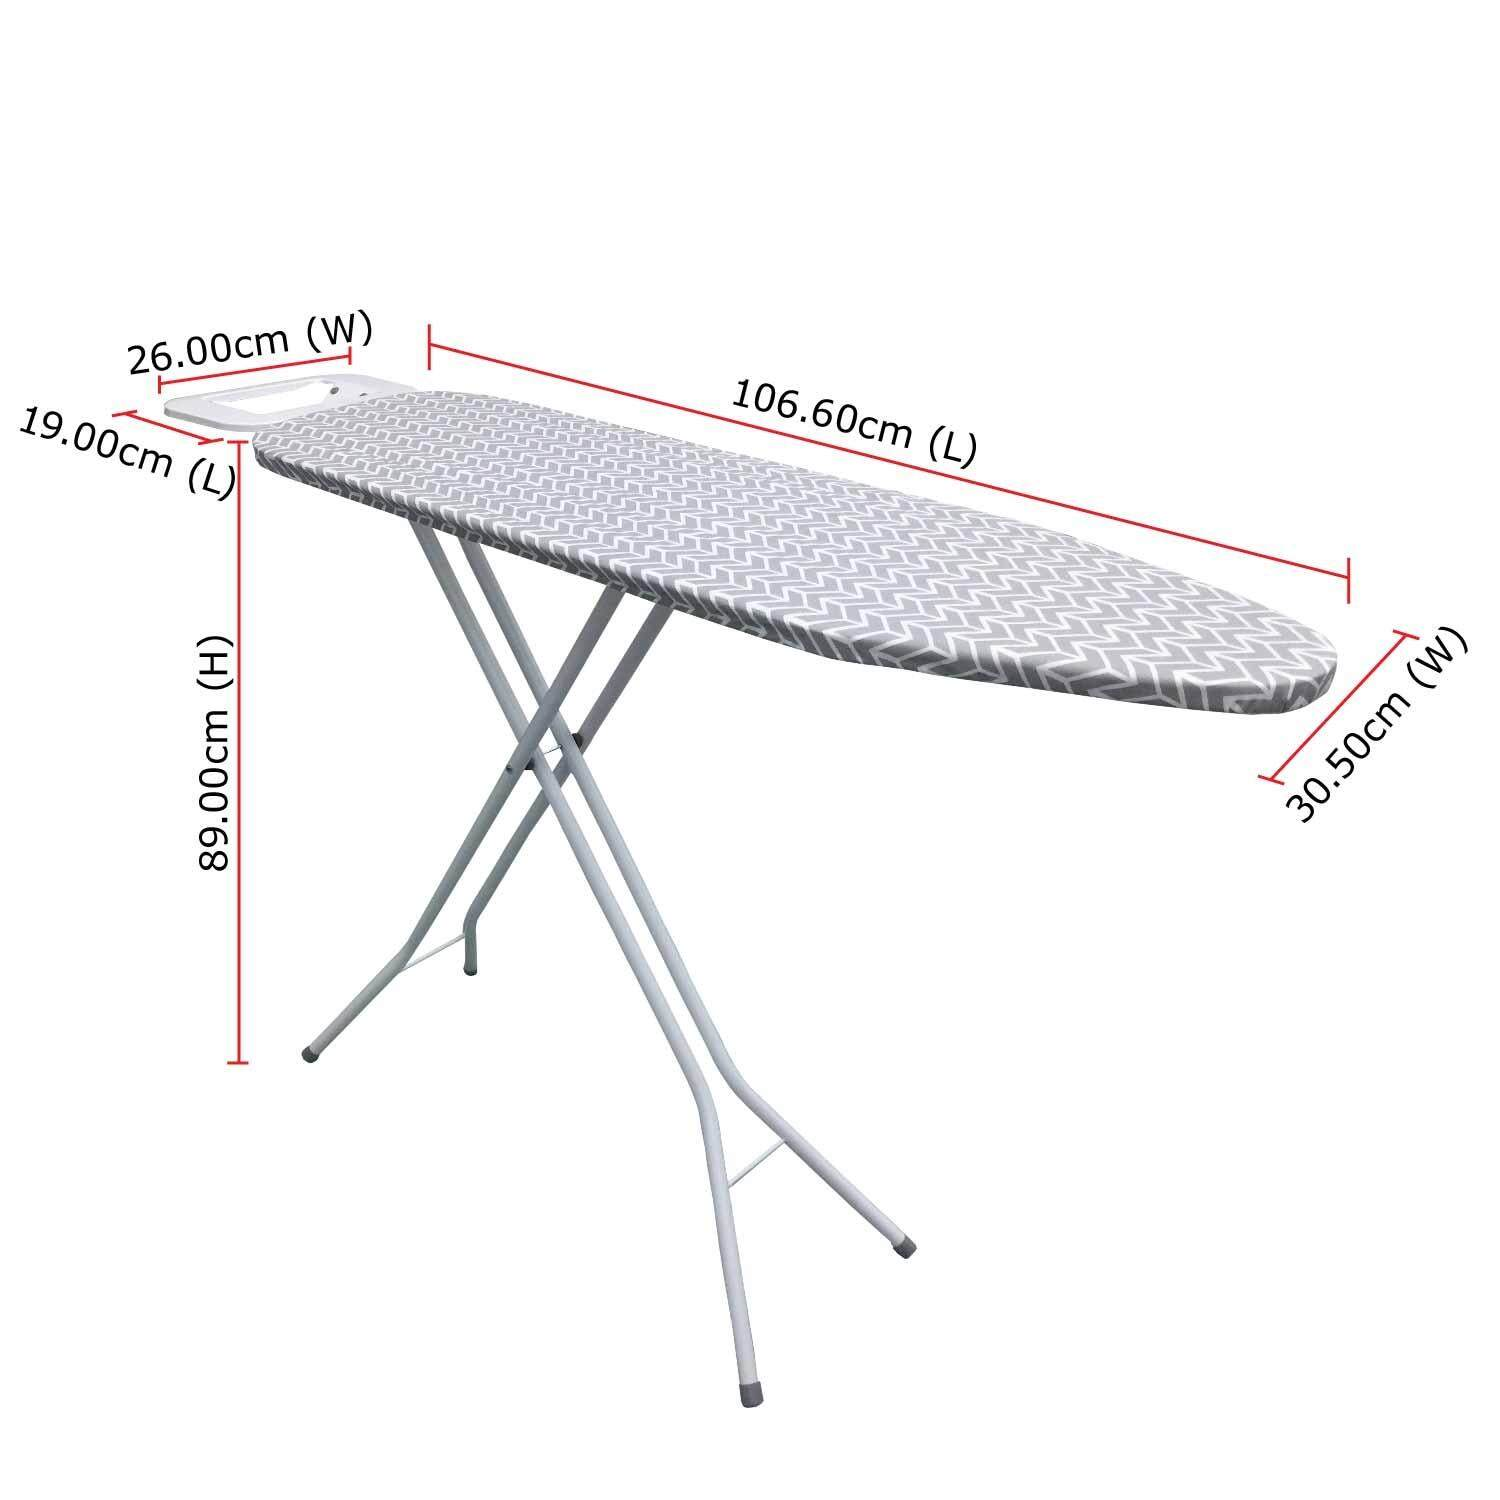 Oem Ironing Board My 70V2 (10660Cm X 3050Cm) For Steam &